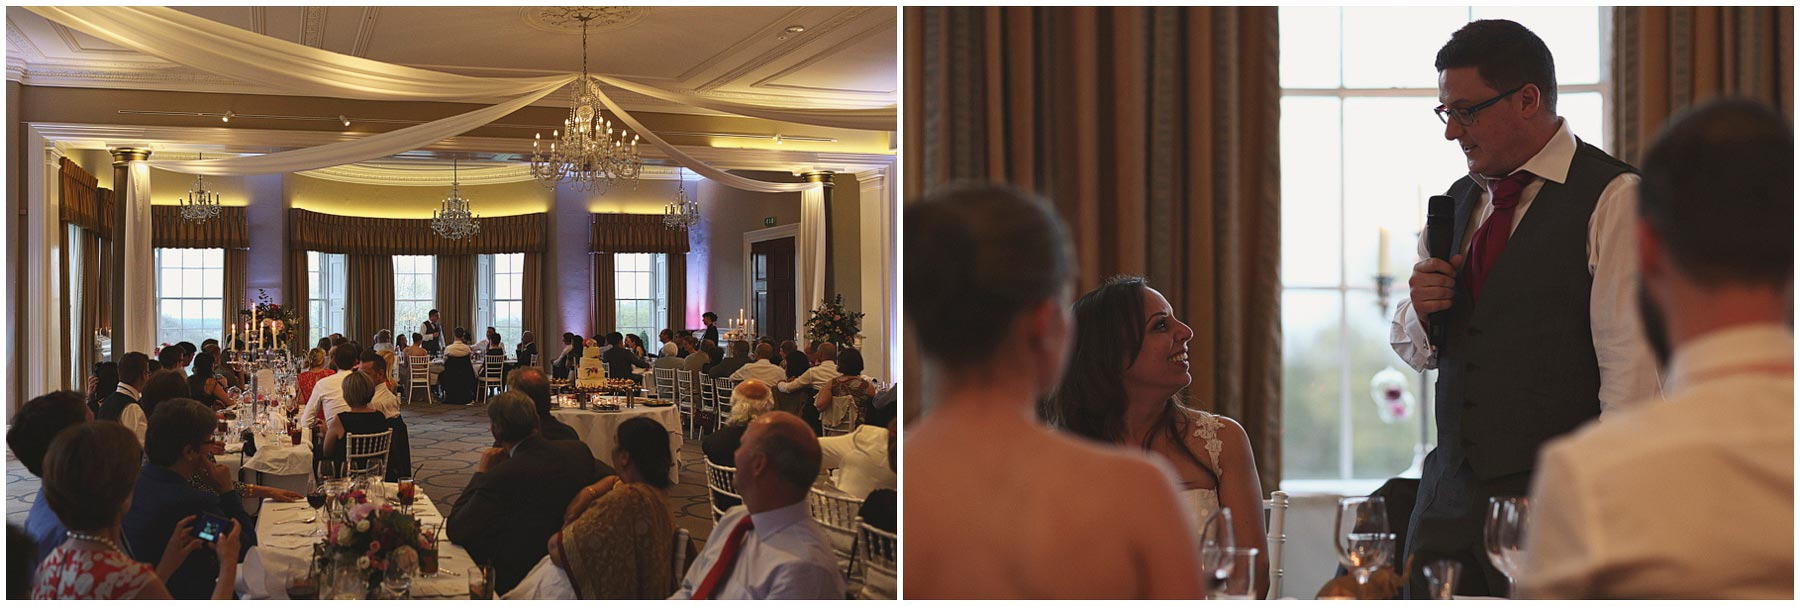 Rudding-Park-Wedding-Photography_0101